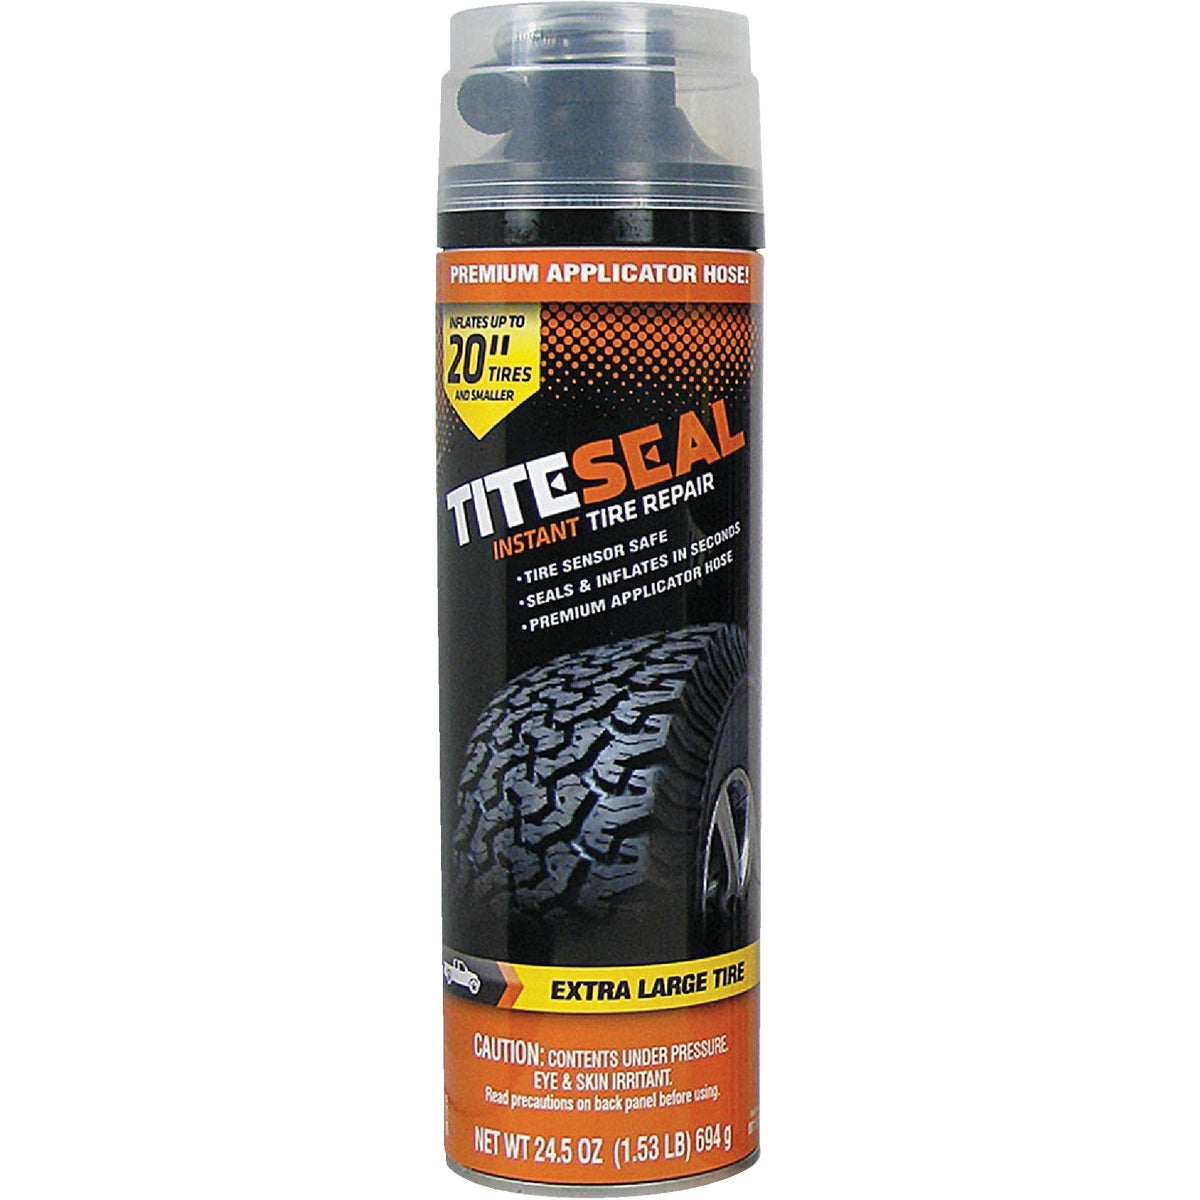 PUNCTURE SEAL - M1128/6 by Radiator Specialty